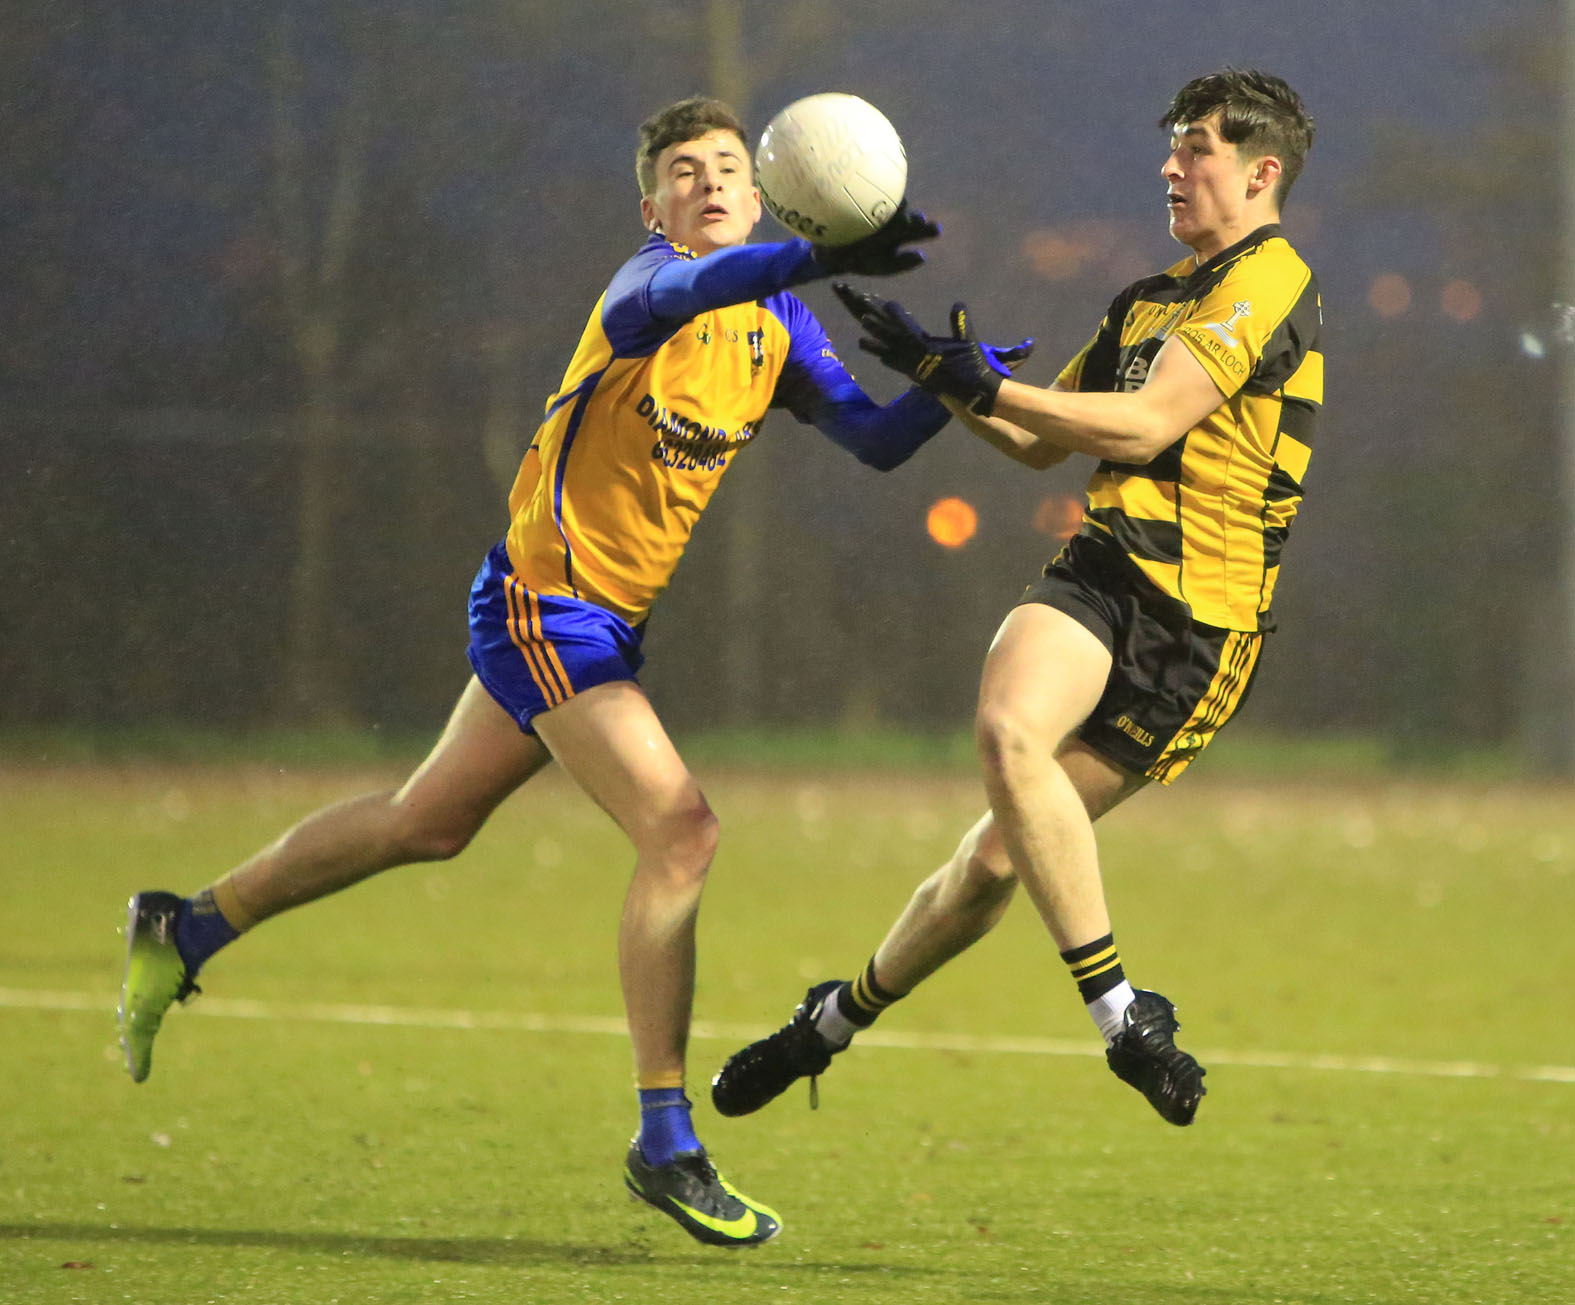 Enniskillen Gaels go in search of an Ulster Club Final place